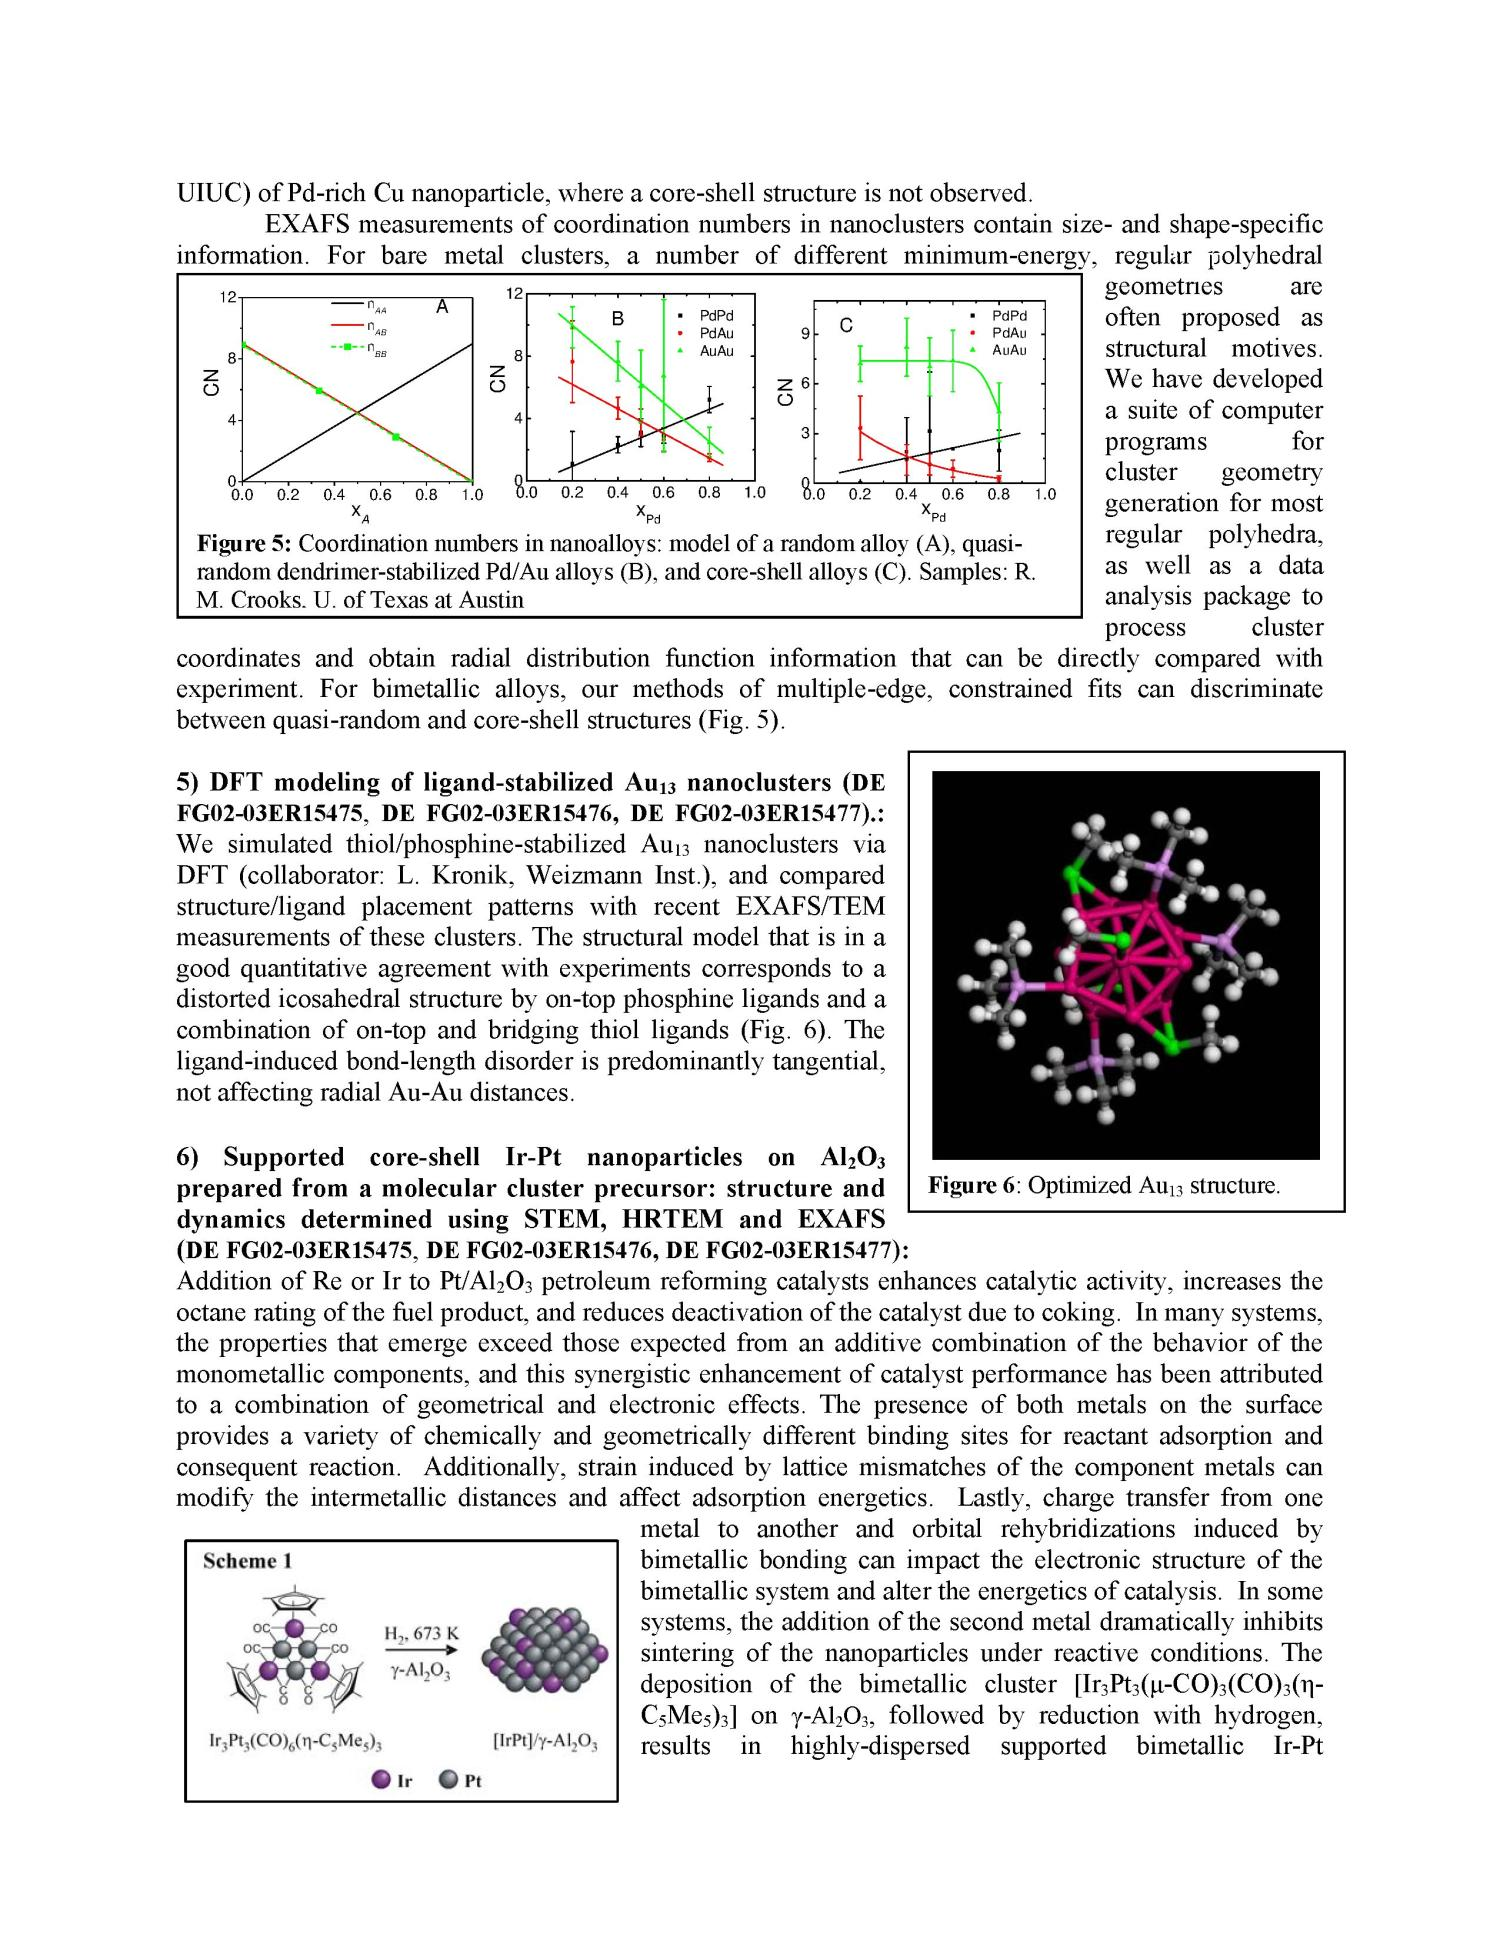 The Reactivity and Structural Dynamics of Supported Metal Nanoclusters Using Electron Microscopy, in situ X-Ray Spectroscopy, Electronic Structure Theories, and Molecular Dynamics Simulations.                                                                                                      [Sequence #]: 4 of 6